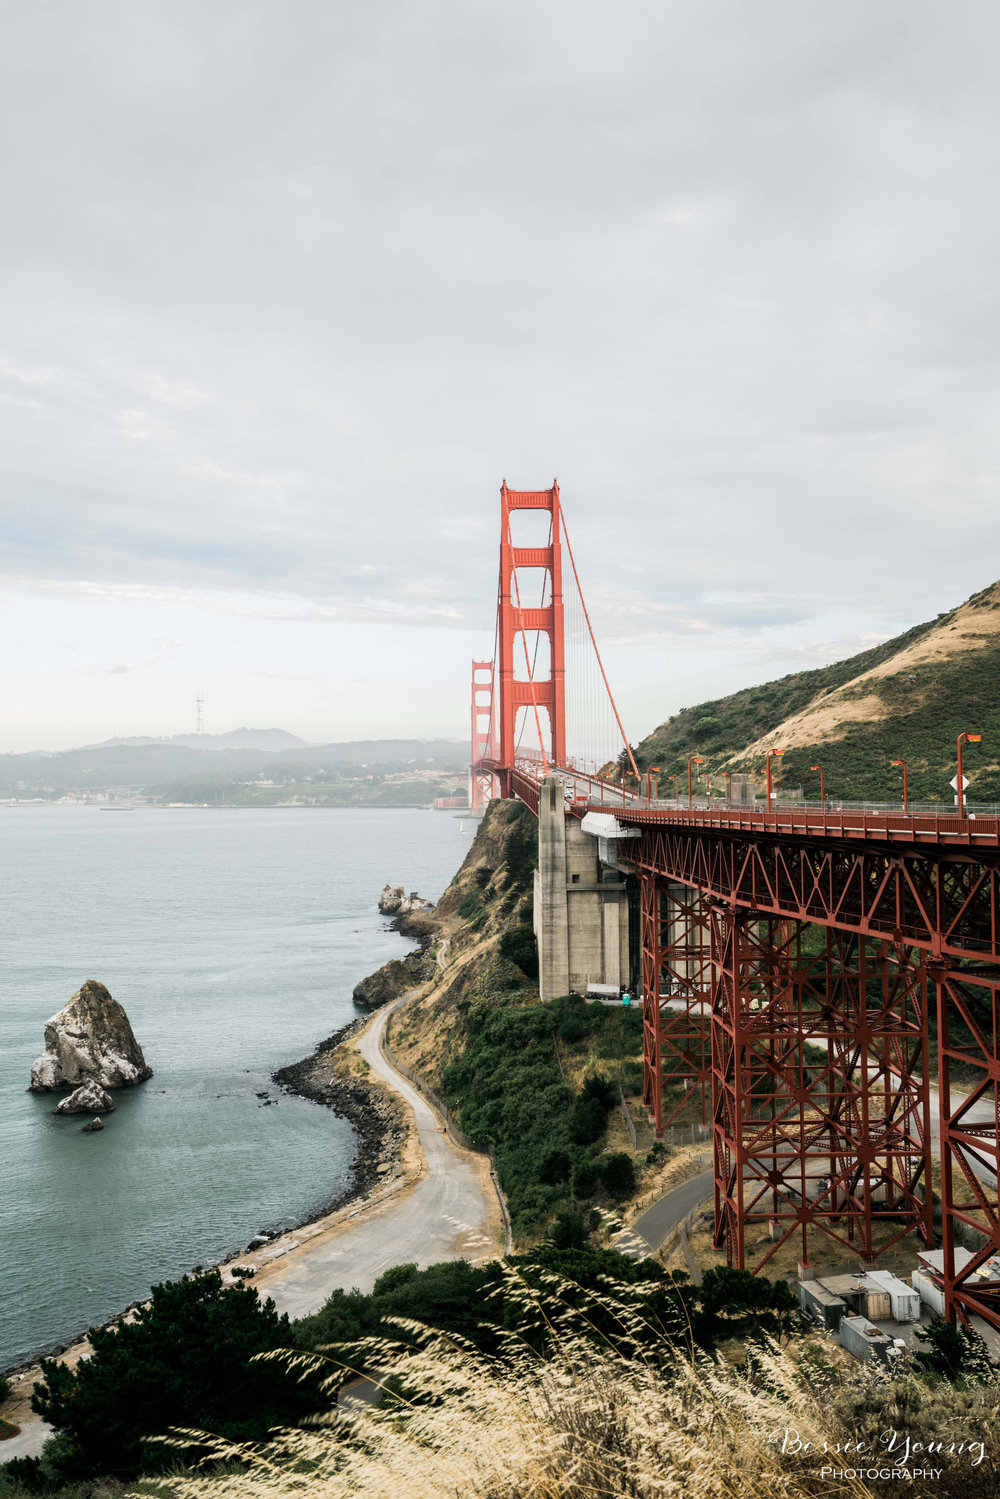 San Francisco 2016 - Bessie Young Photography-8.jpg